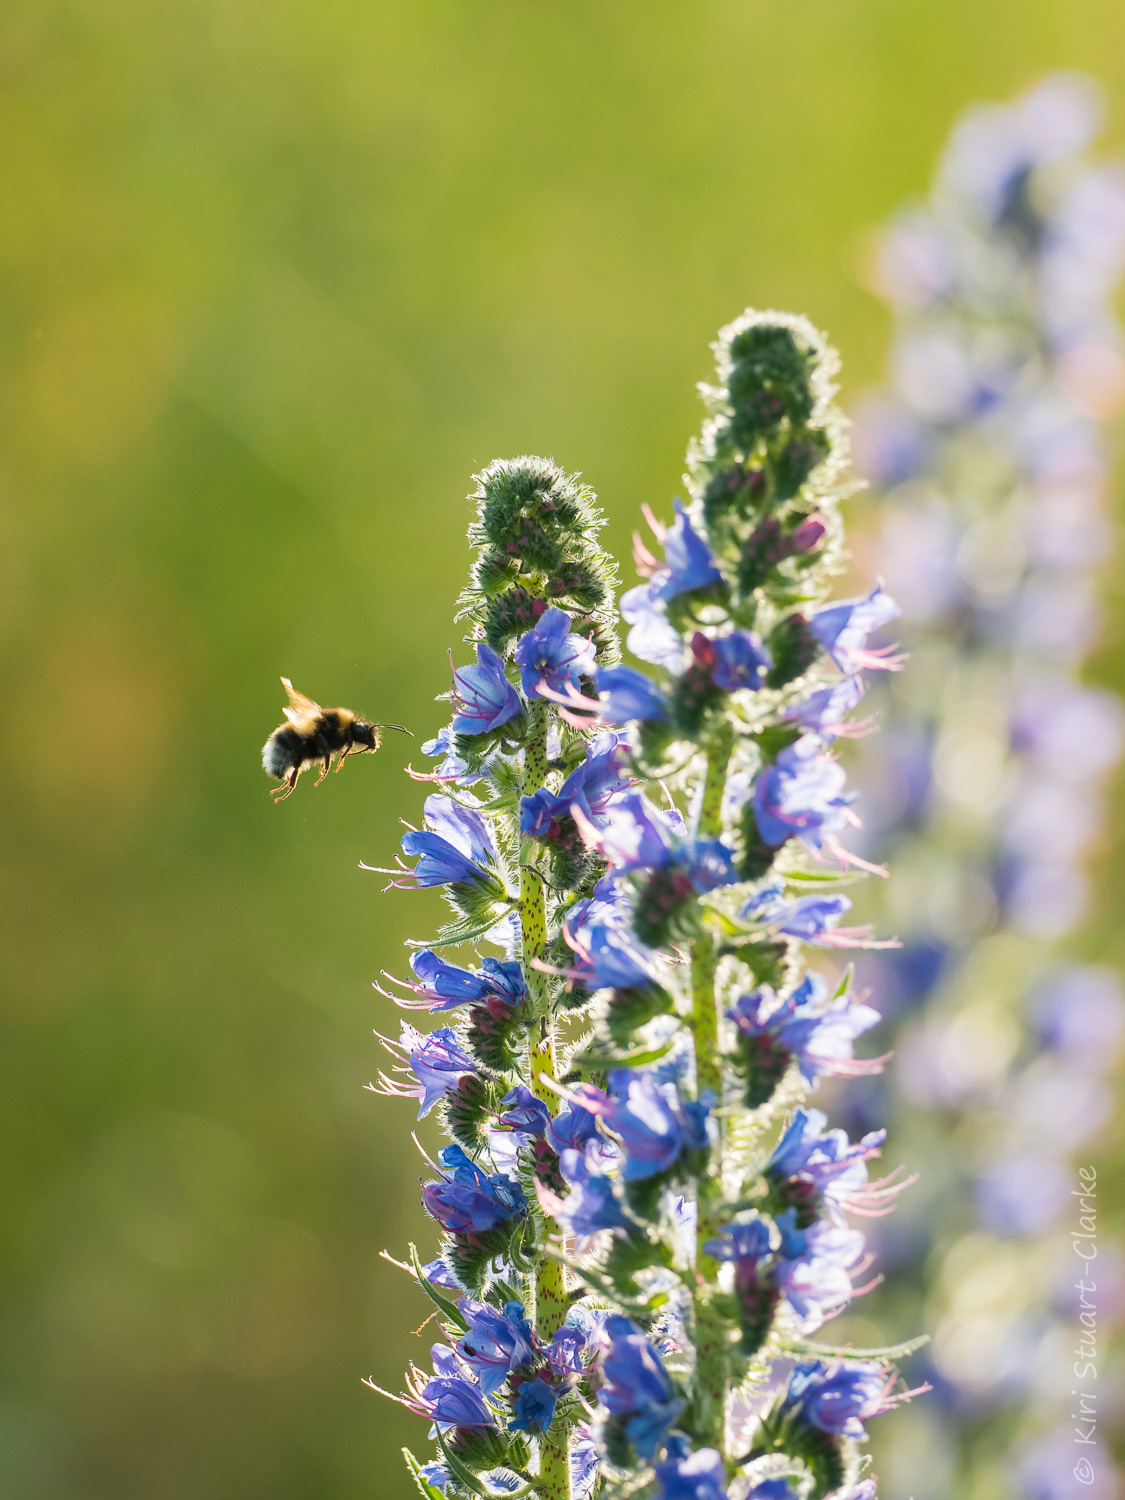 Bee flying towards Viper's-bugloss flower spikes